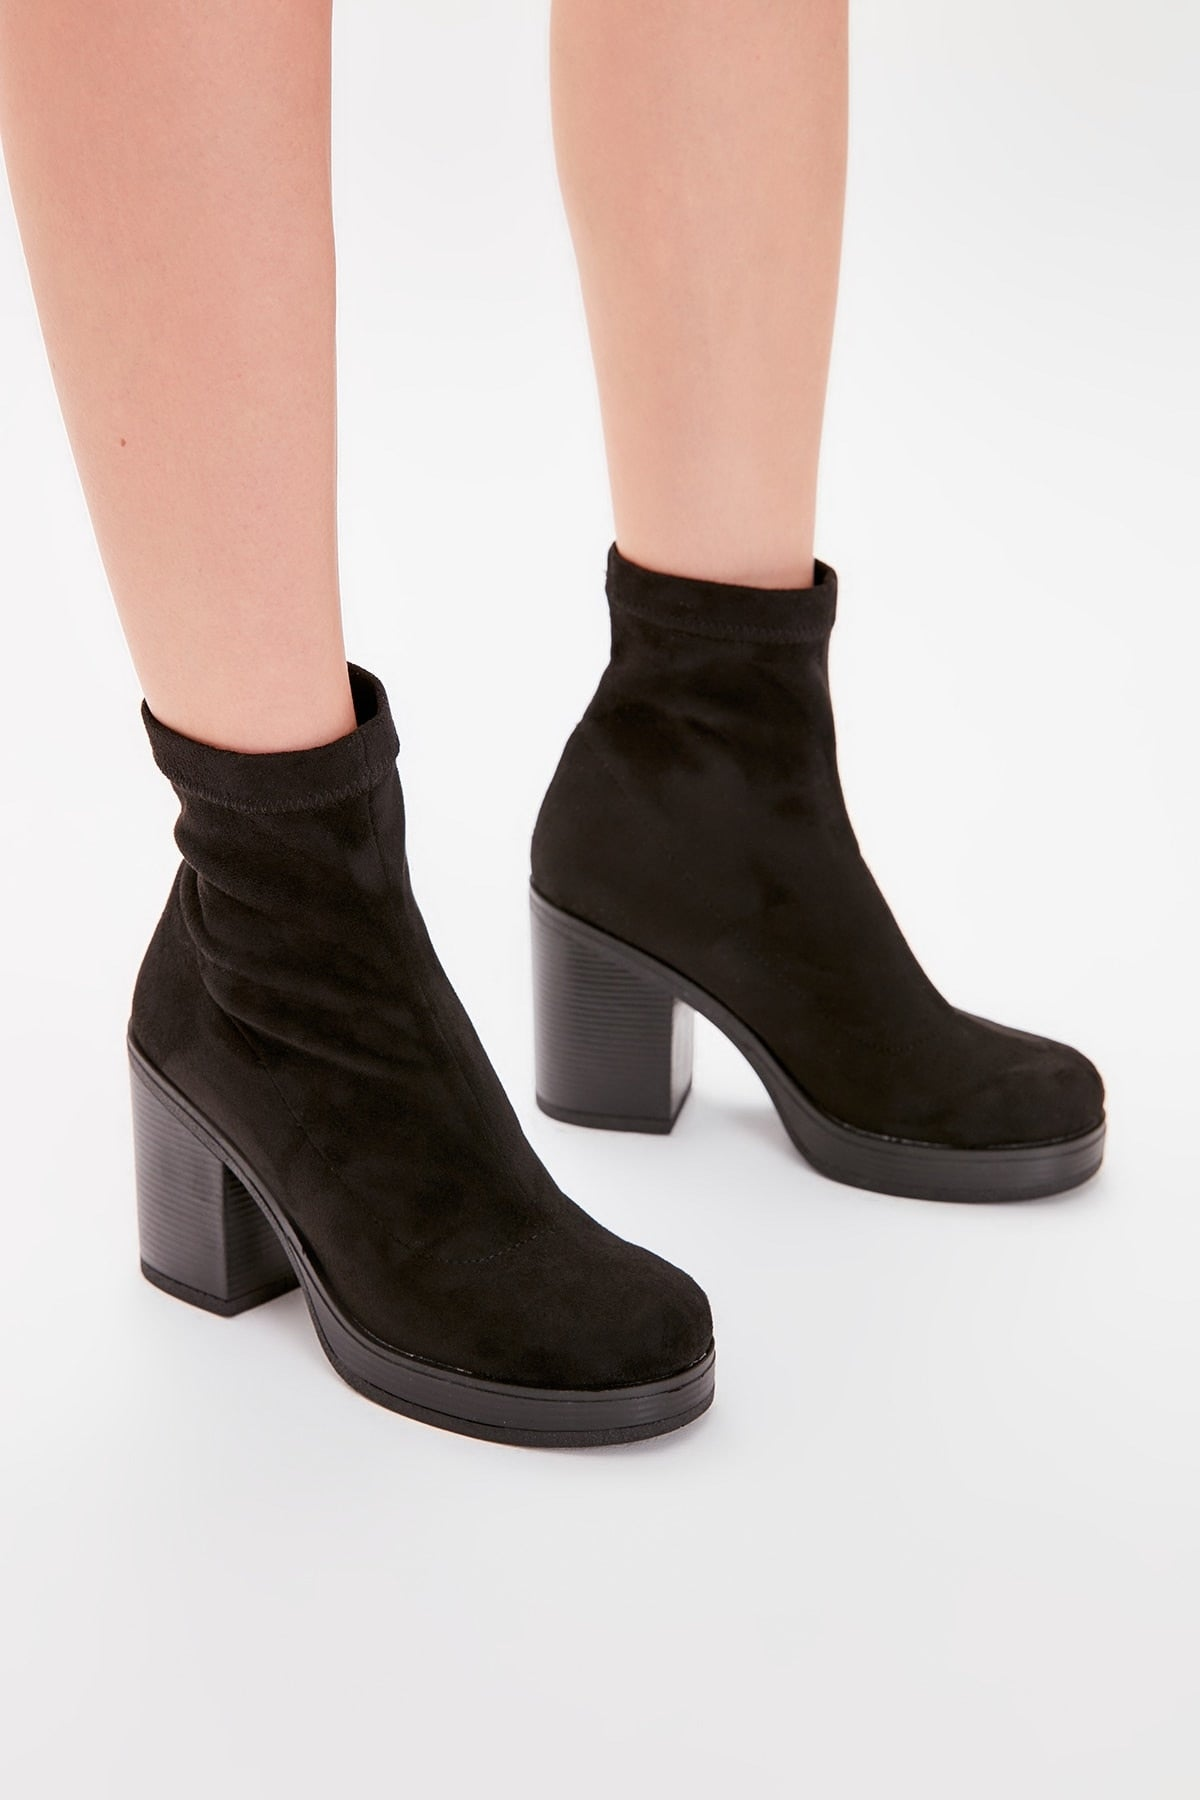 Black Suede Stretch Women 'S Boots TAKAW20BO0110